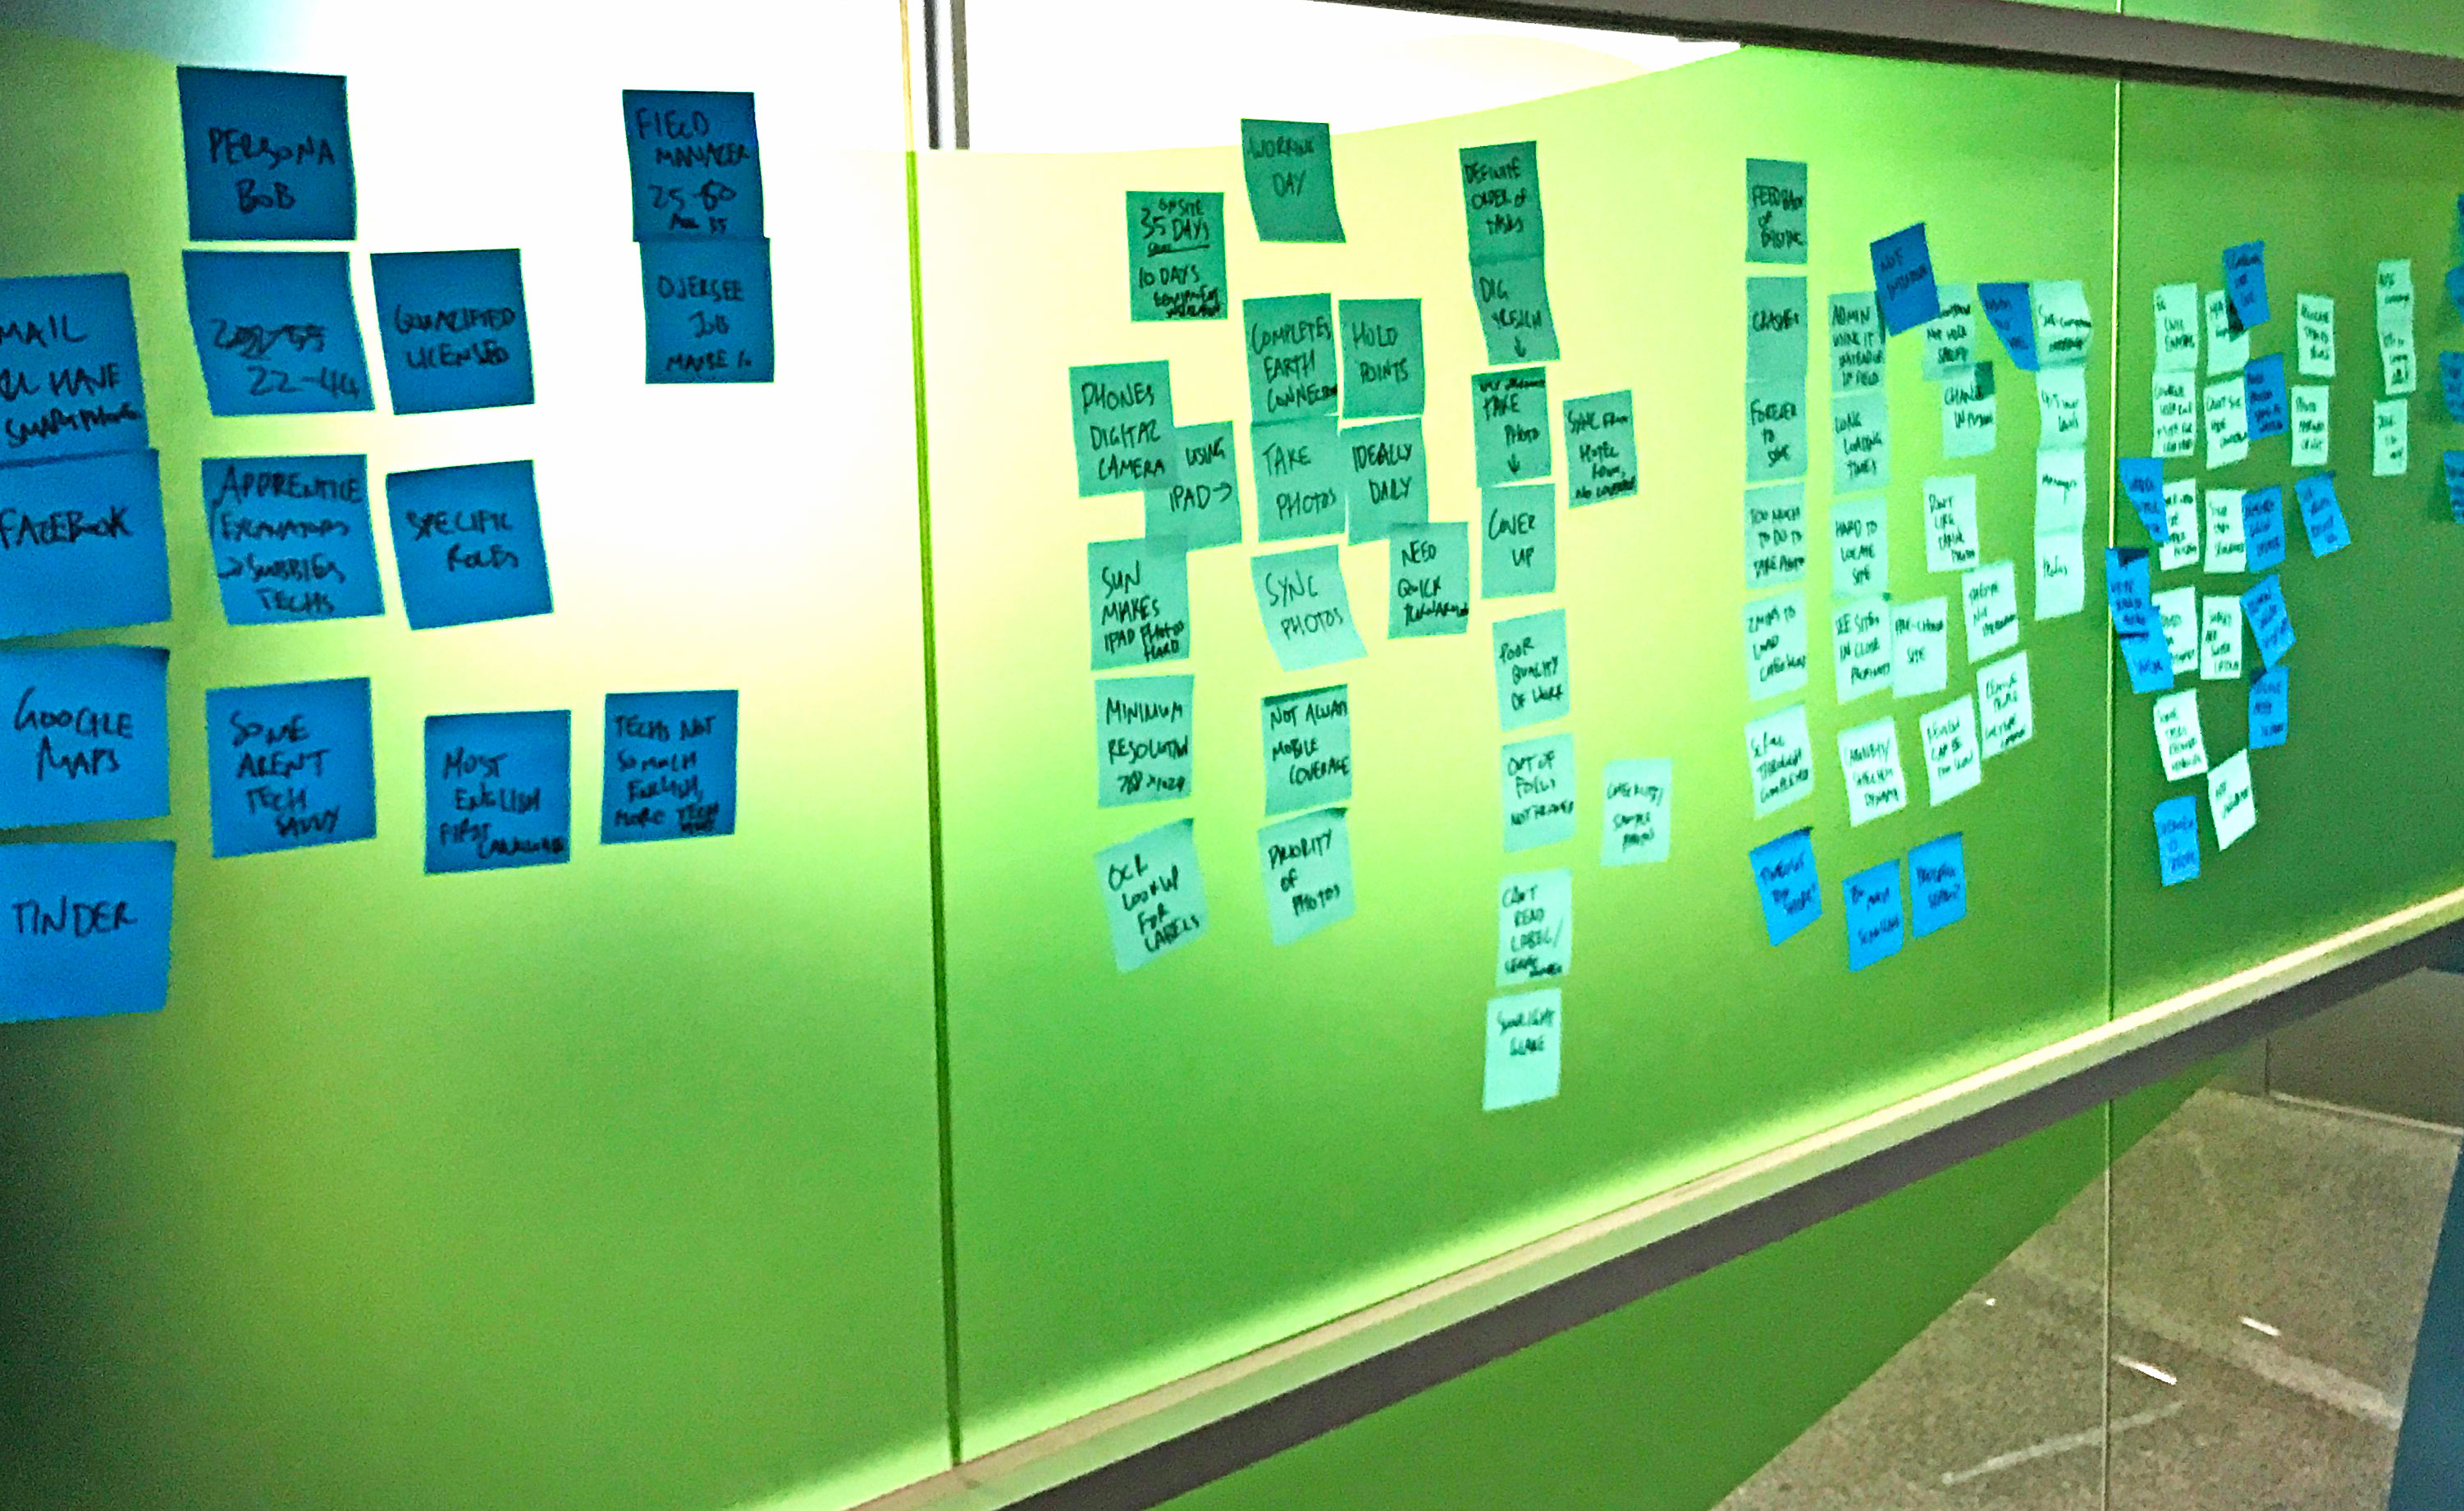 Post it notes on wall